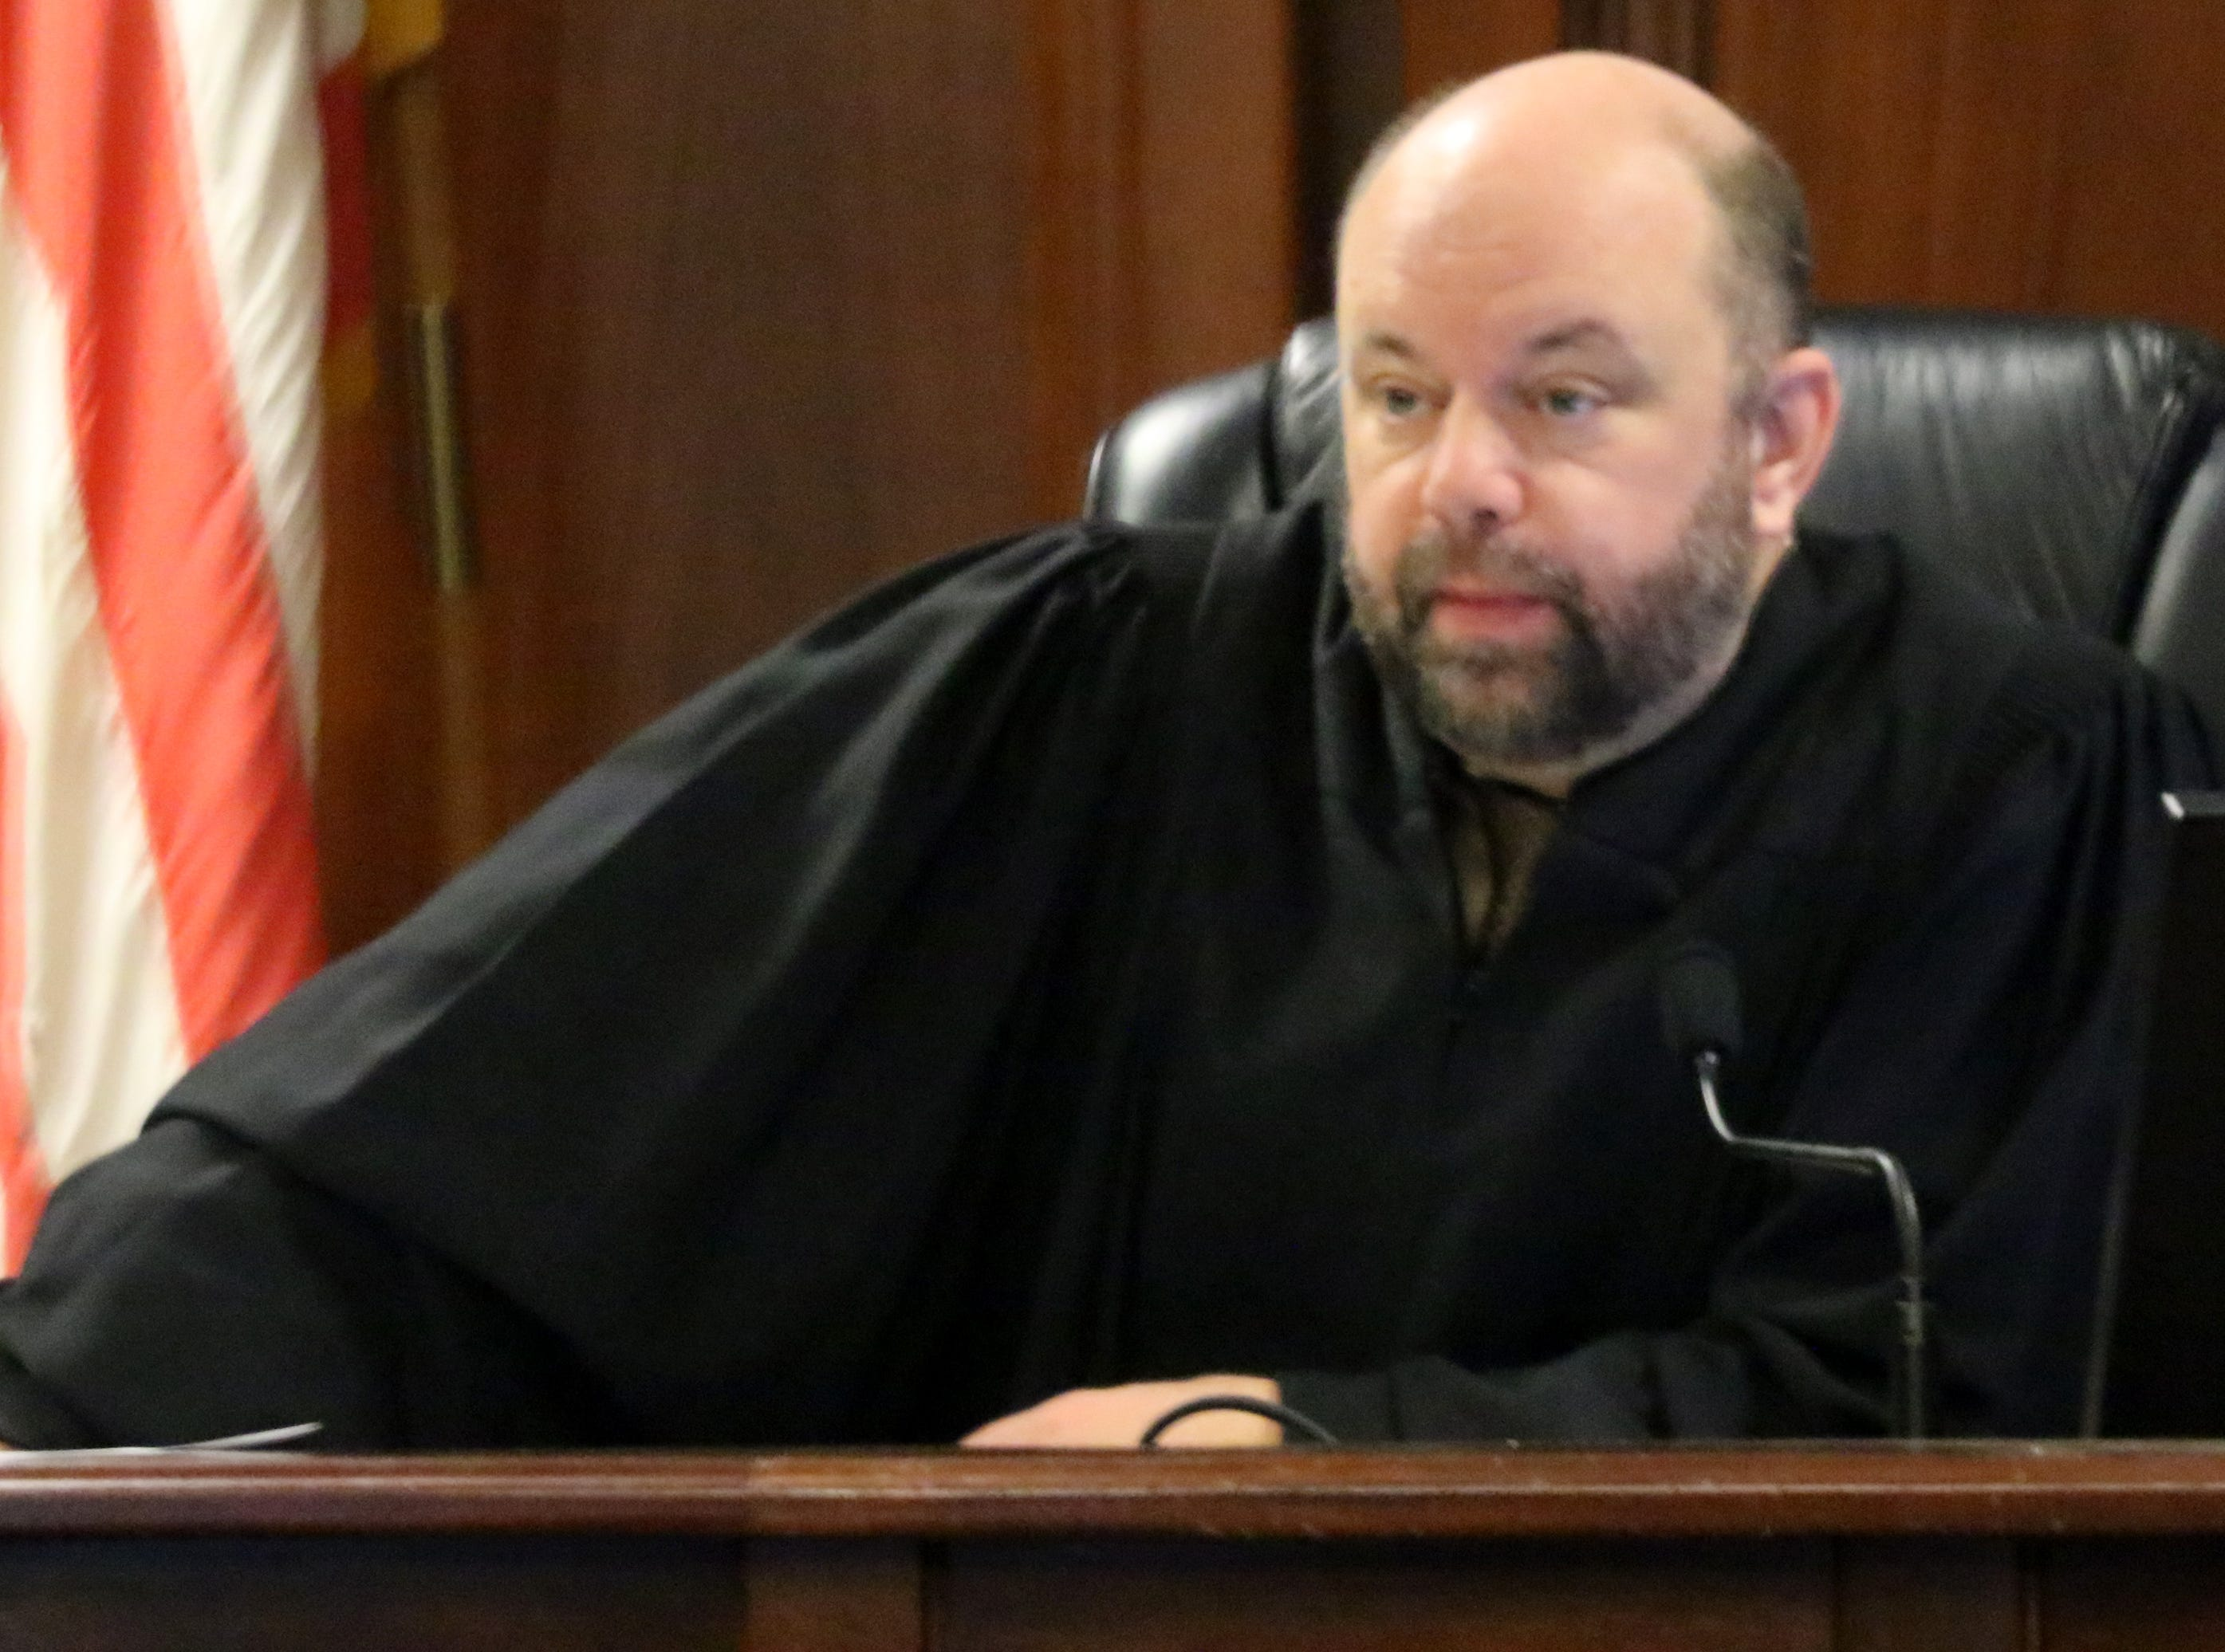 Milwaukee County Circuit Court Judge Christopher Dee found Melissa Sandrone, who shot an employee at M&M Motors in West Allis on March 18, 2018, not guilty by reason of mental defect. Sandrone remains in custody pending evaluation for mental health treatment placement.